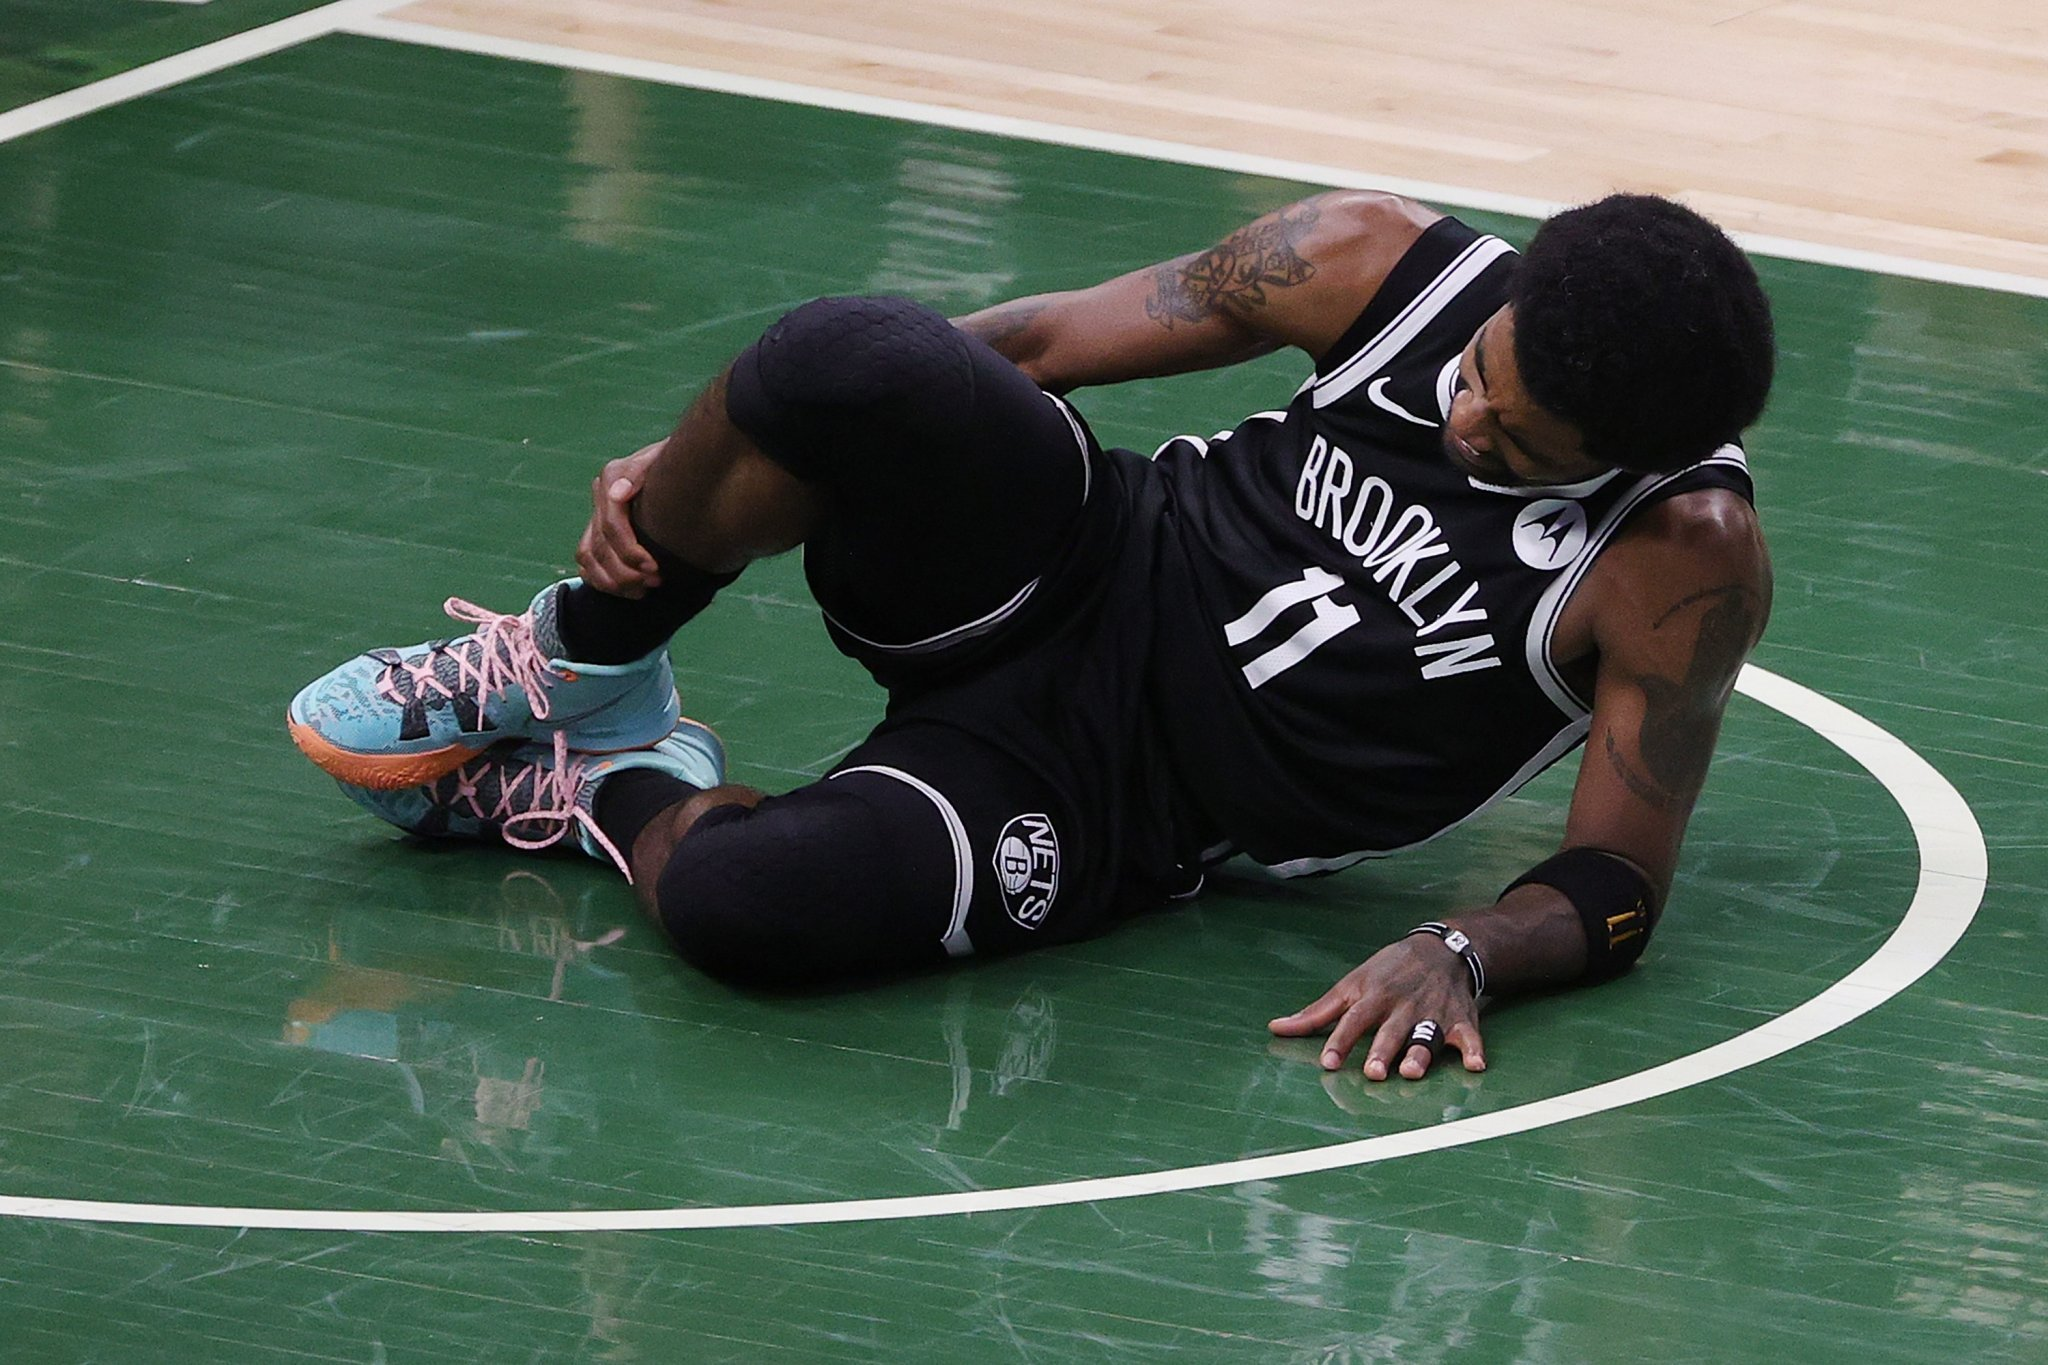 Kyrie's ankle injury has players claiming 'karma' and calling Giannis dirty